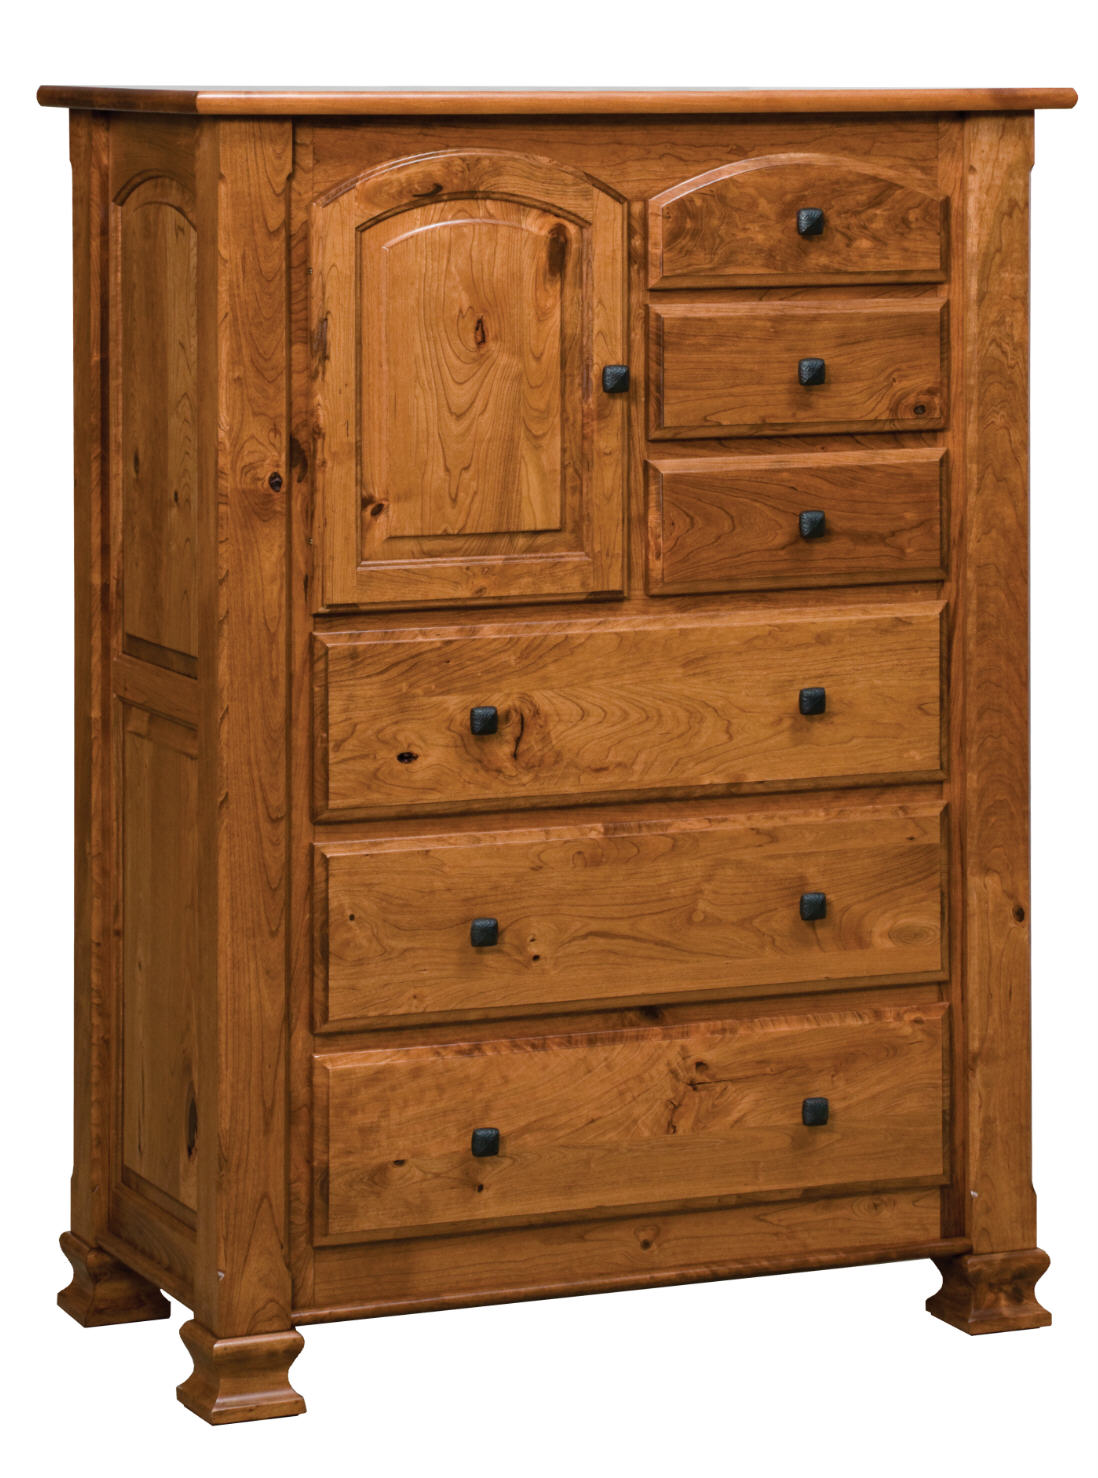 Manor house chest 560 chdoc 141 bedroom bedroom for Stone barn furnishings